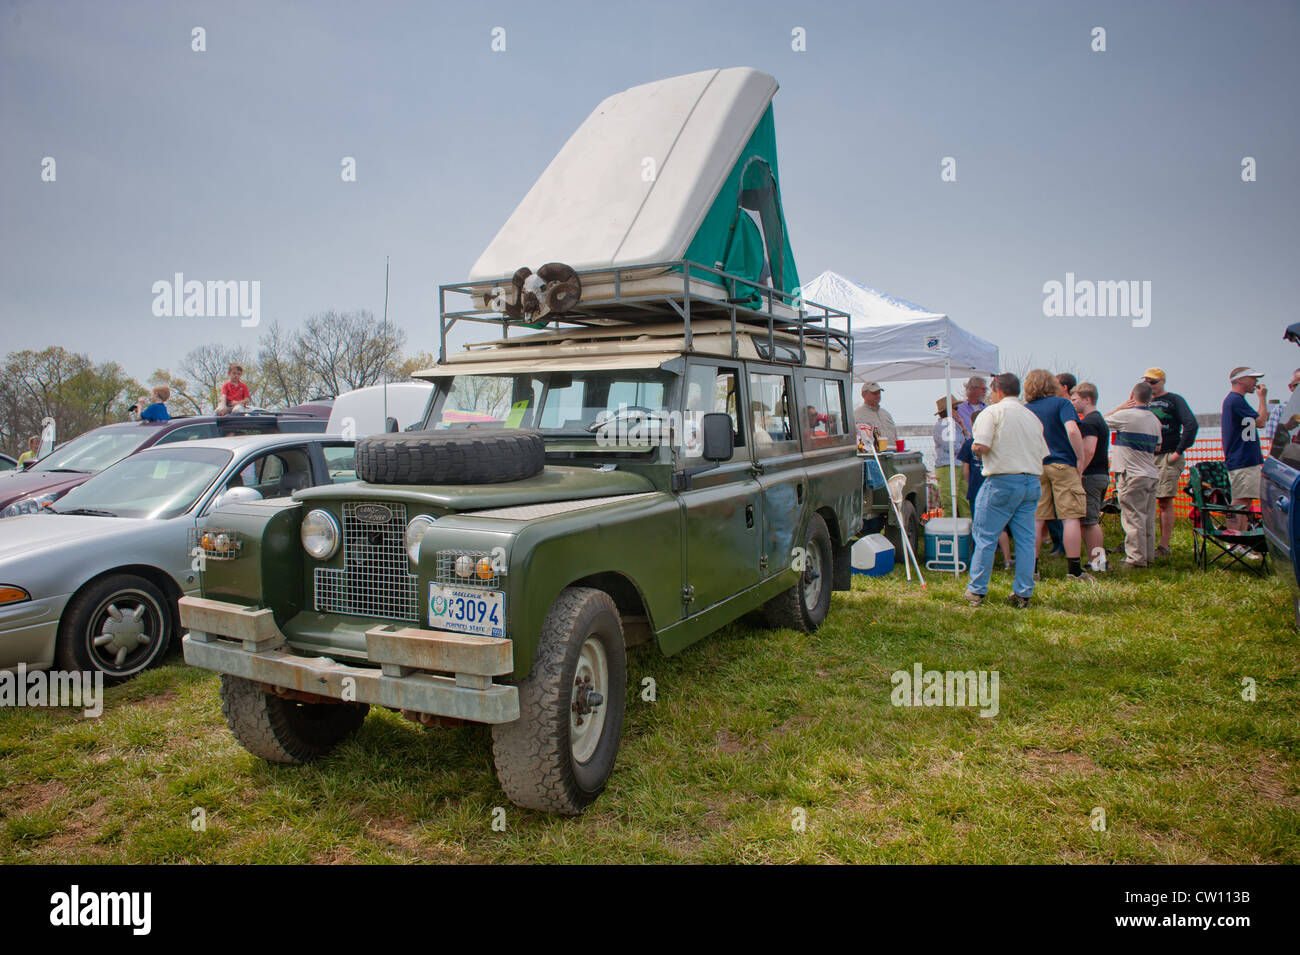 Cars parked for tailgate during horse races - Stock Image